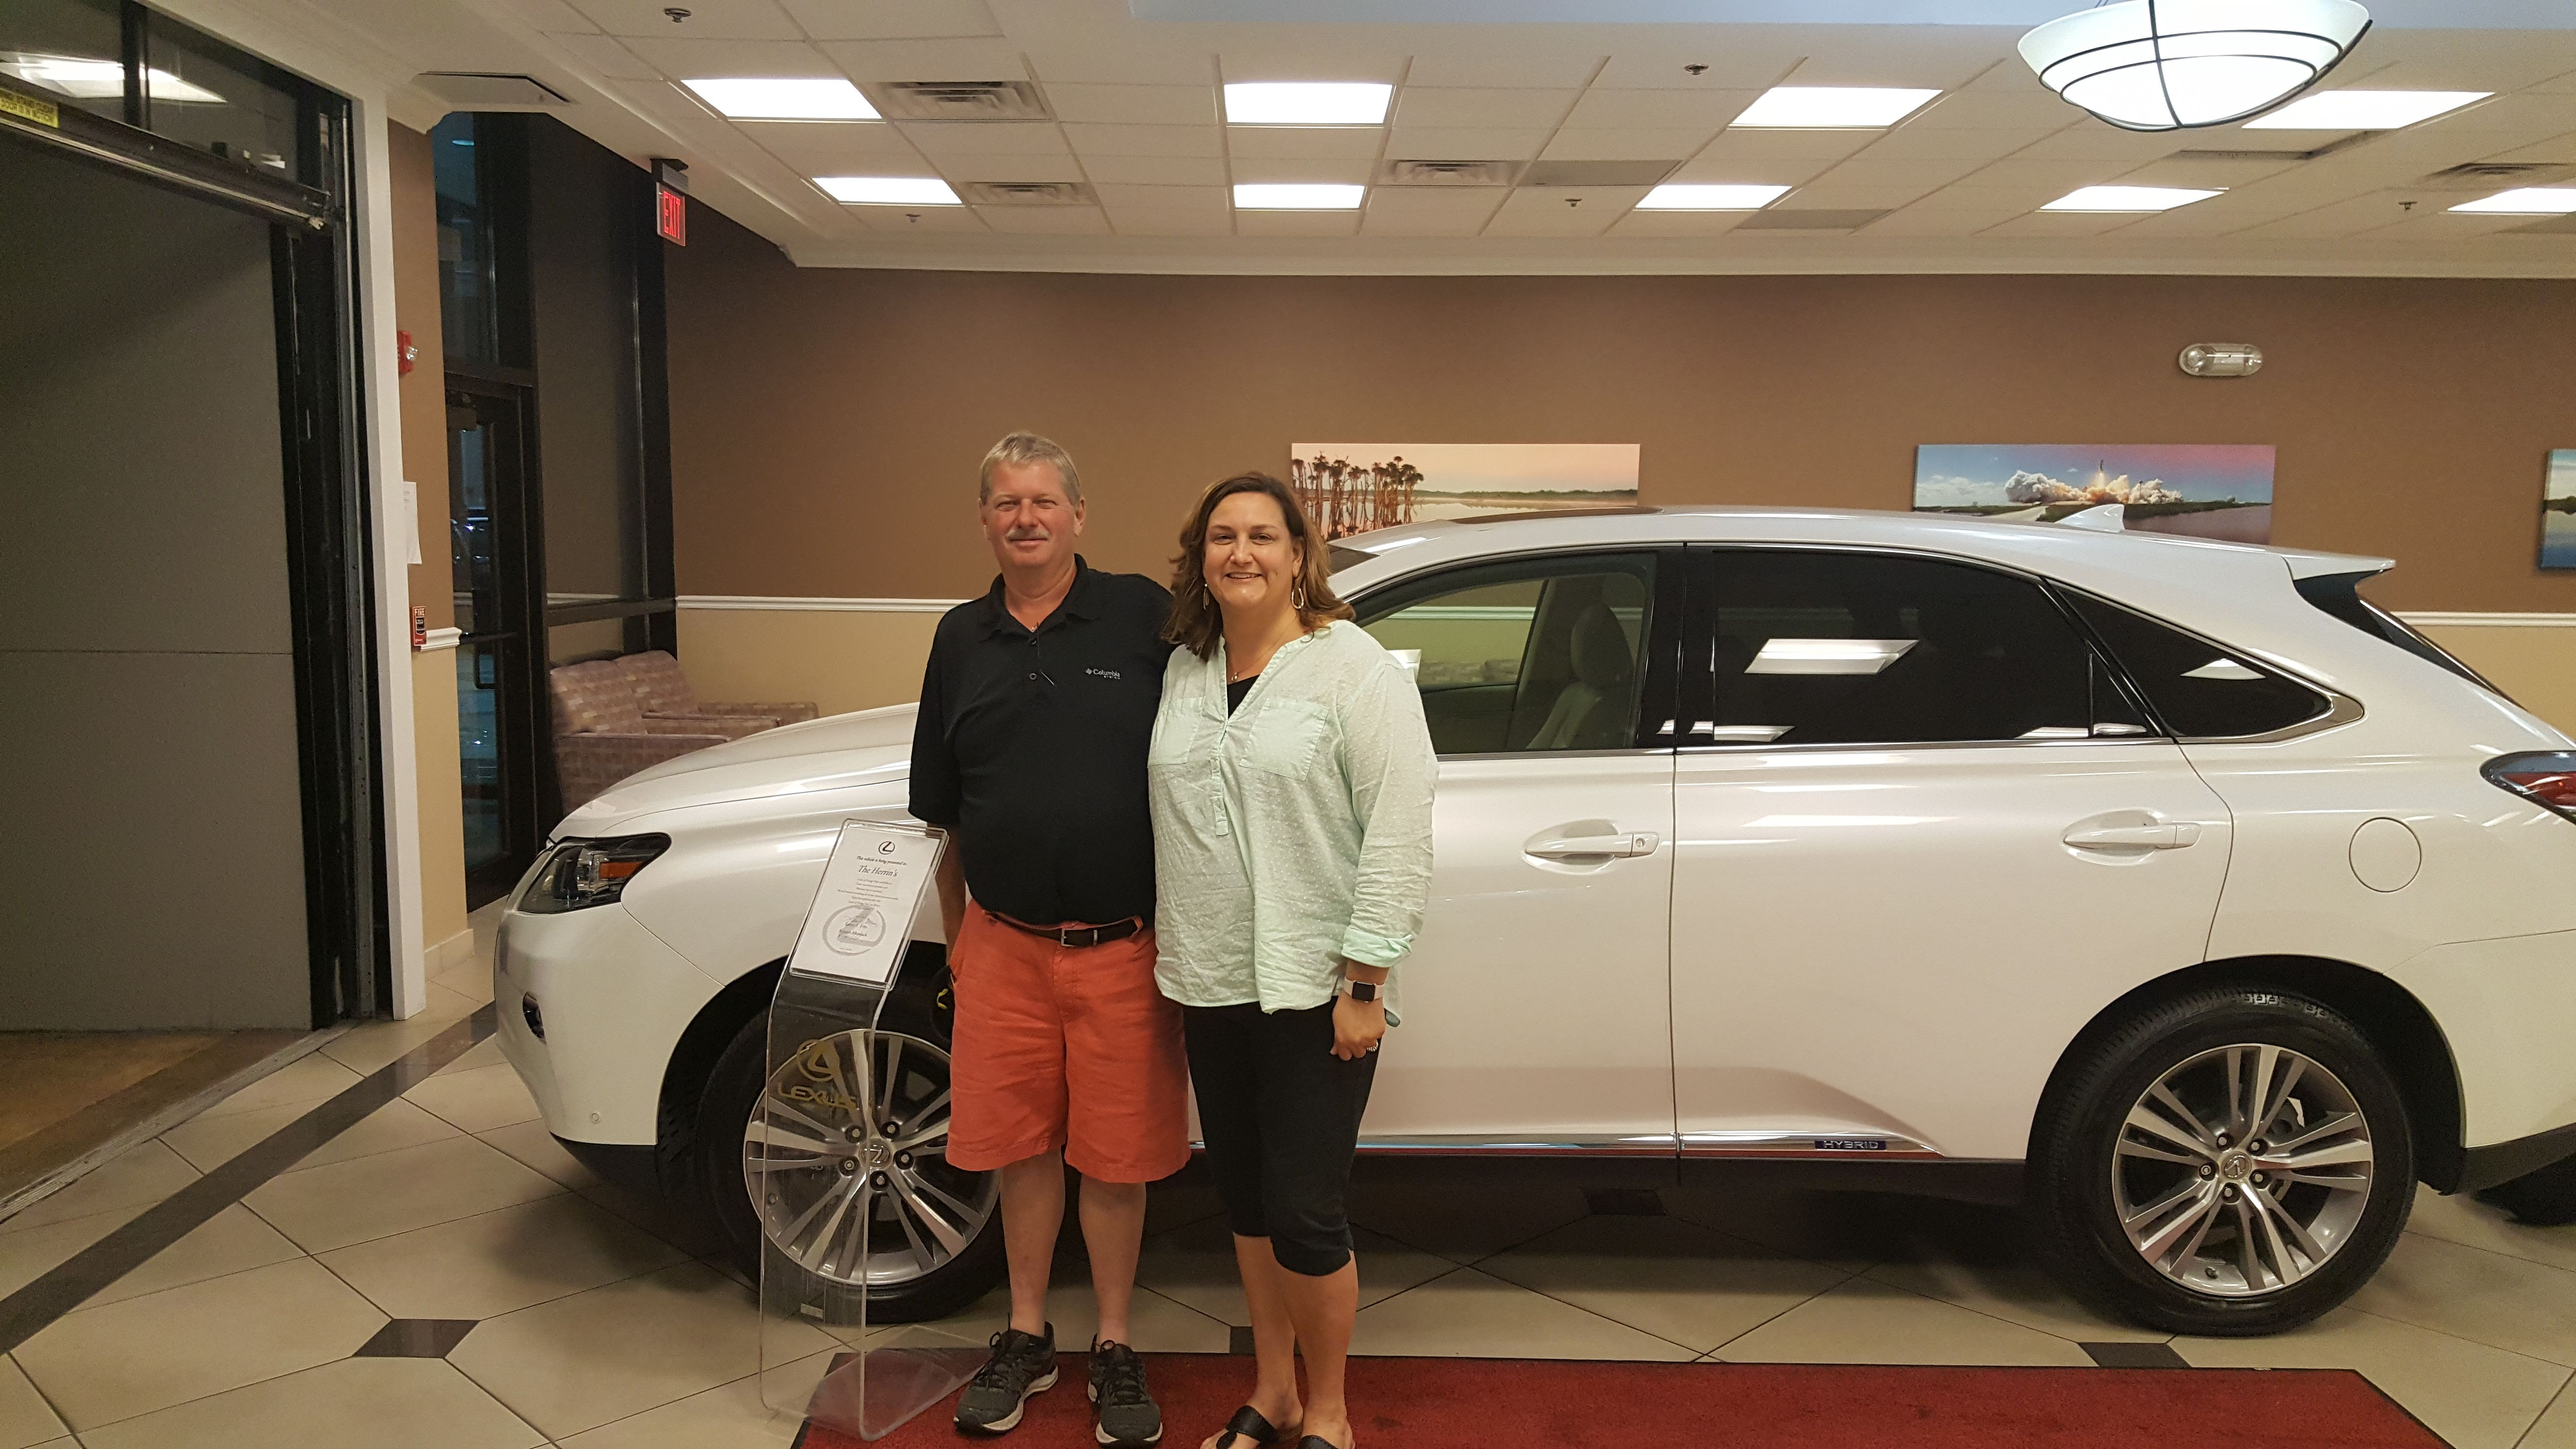 Congratulations To The Herrin Family Who Purchased Their New Lexus With Our Team Member Karen Fitts At Lexus Of Orang Orange Park Lexus Affordable Luxury